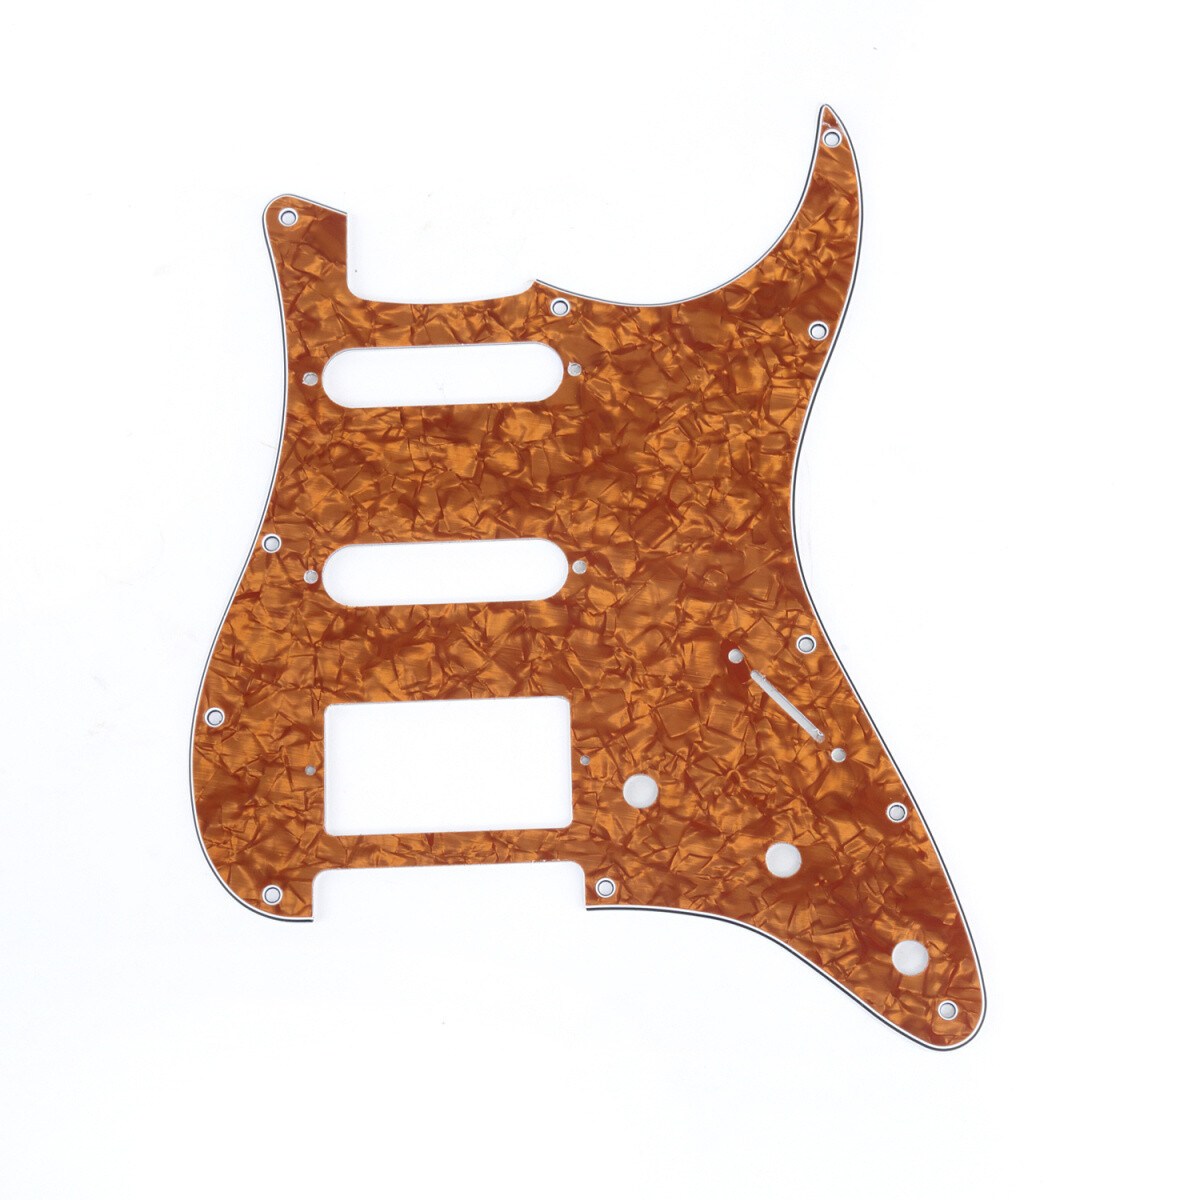 Brio 11-Hole Modern Style Strat HSS Pickguard for American Stratocaster Pearl Golden Brown